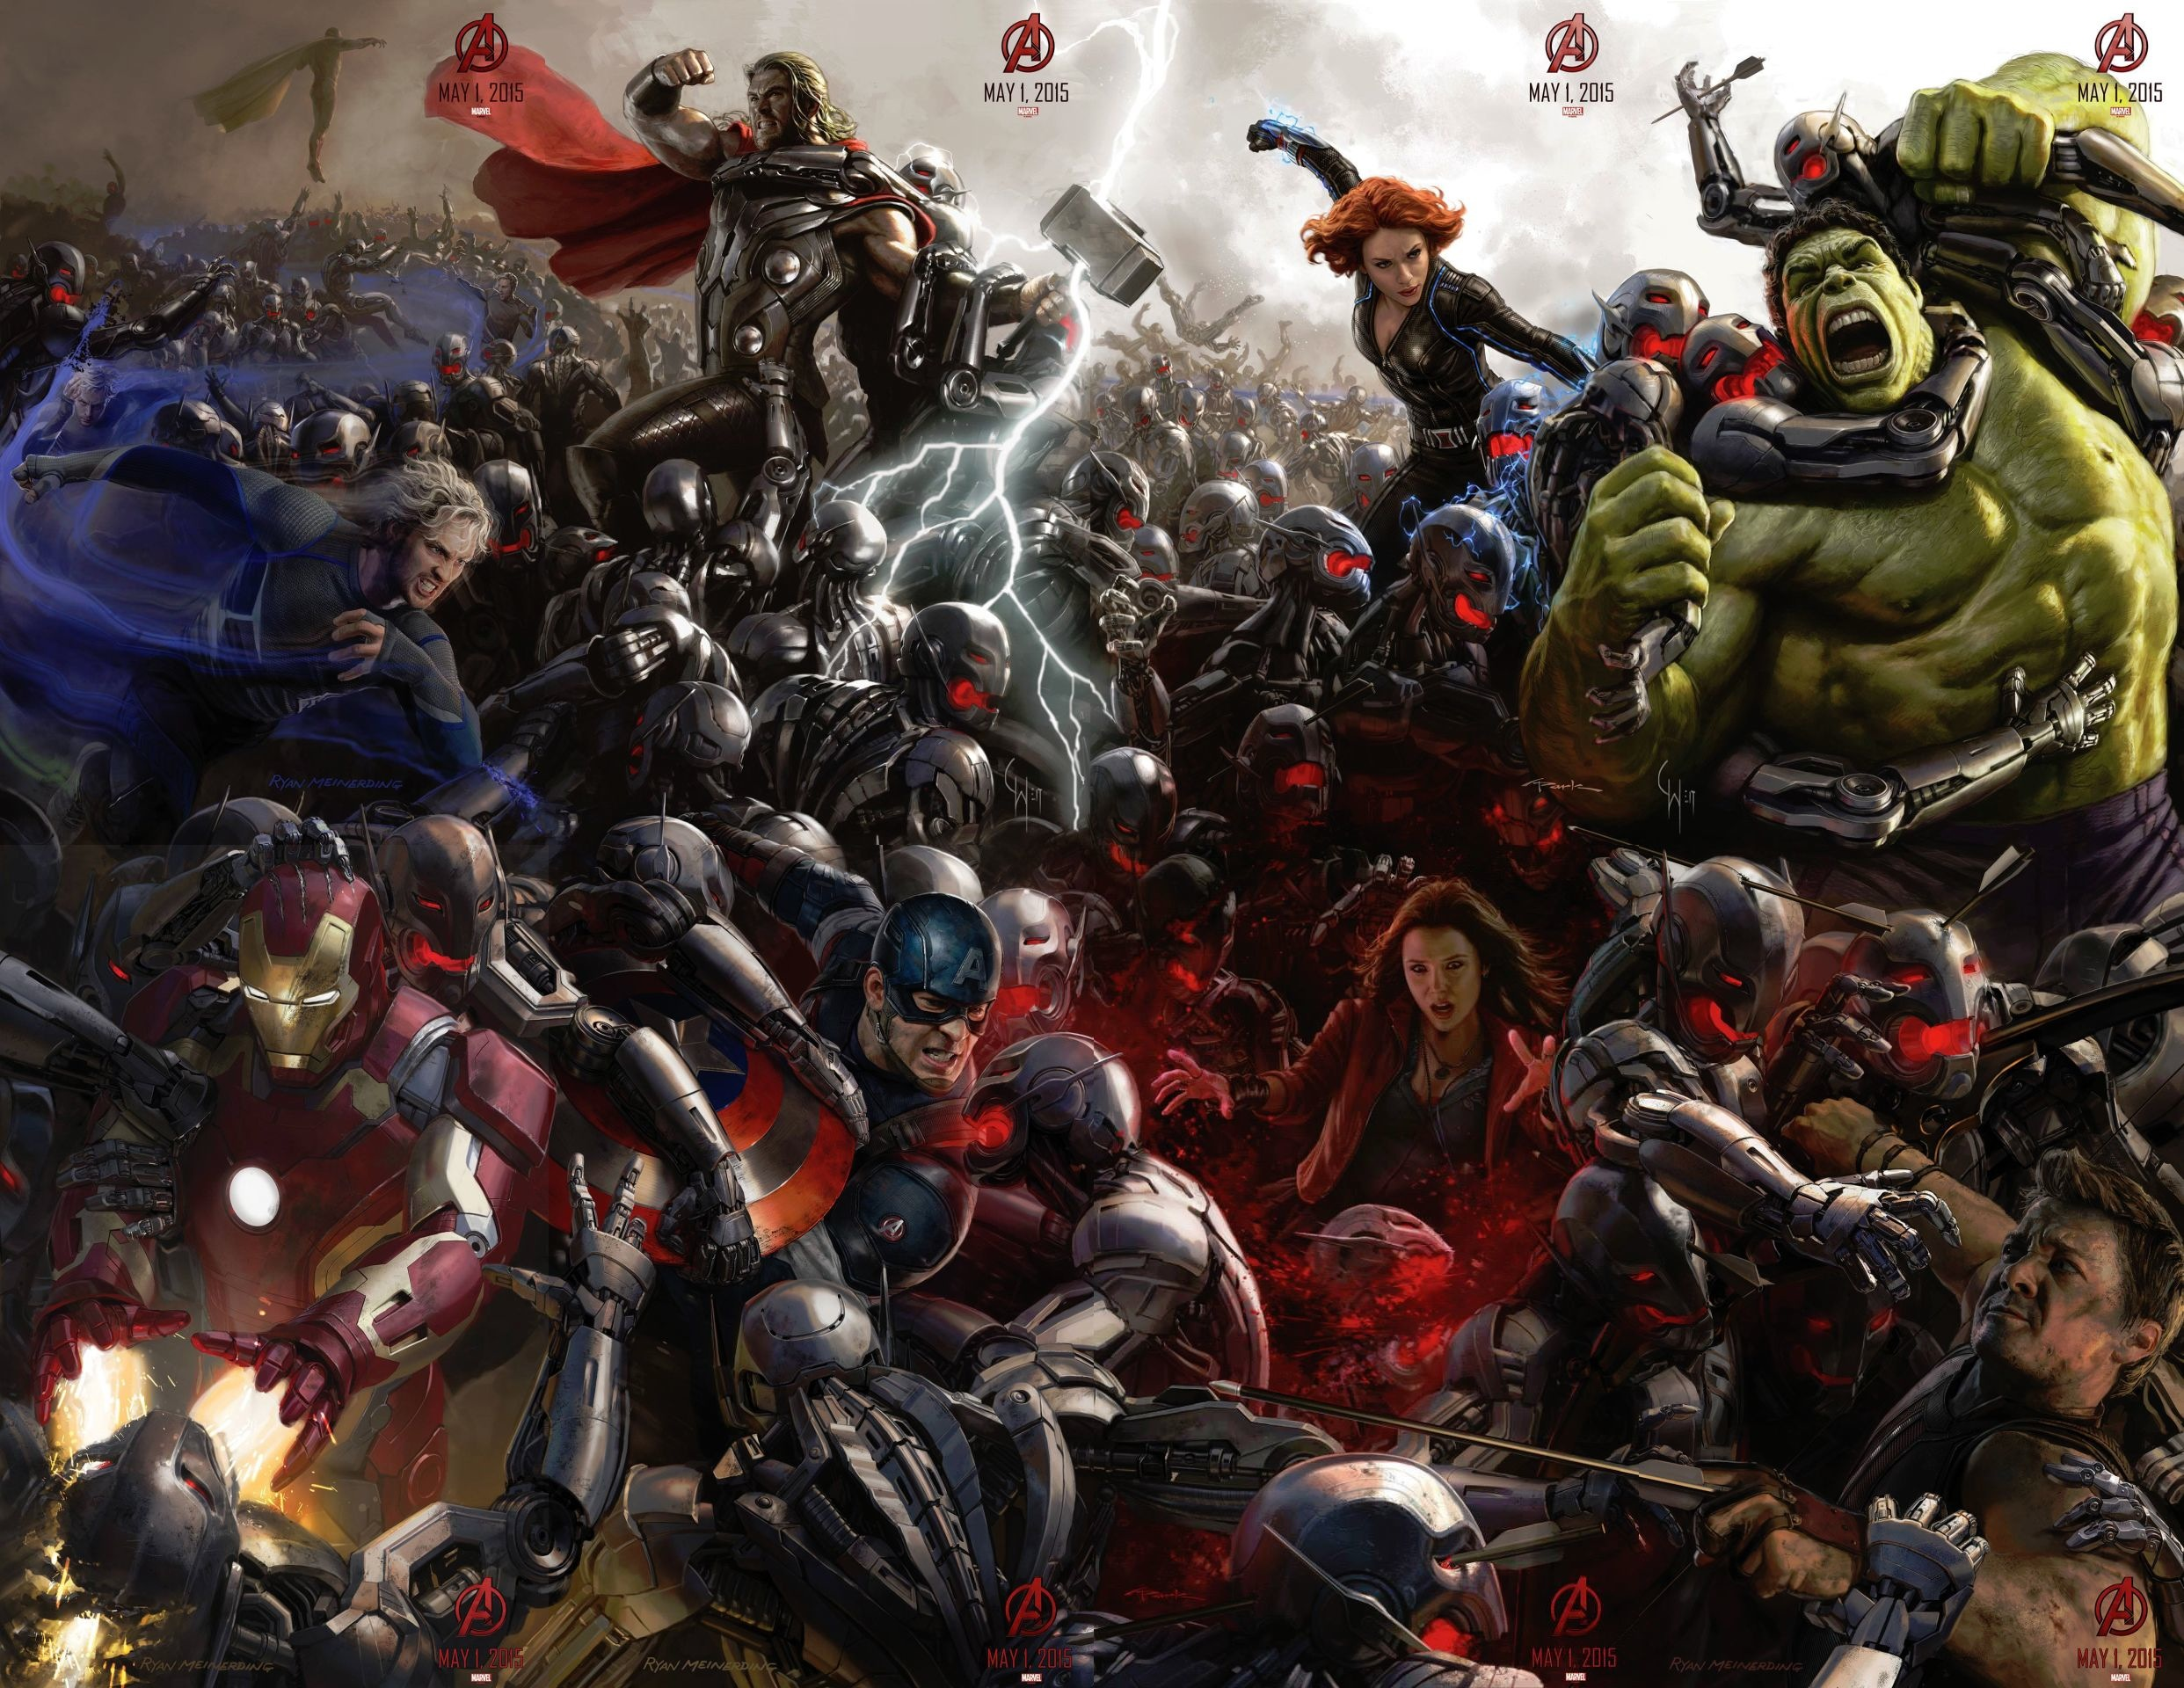 avengers-age-of-ultron-collage-full-avengers-age-of-ultron-poster-revealed-with-full-superhero-roster